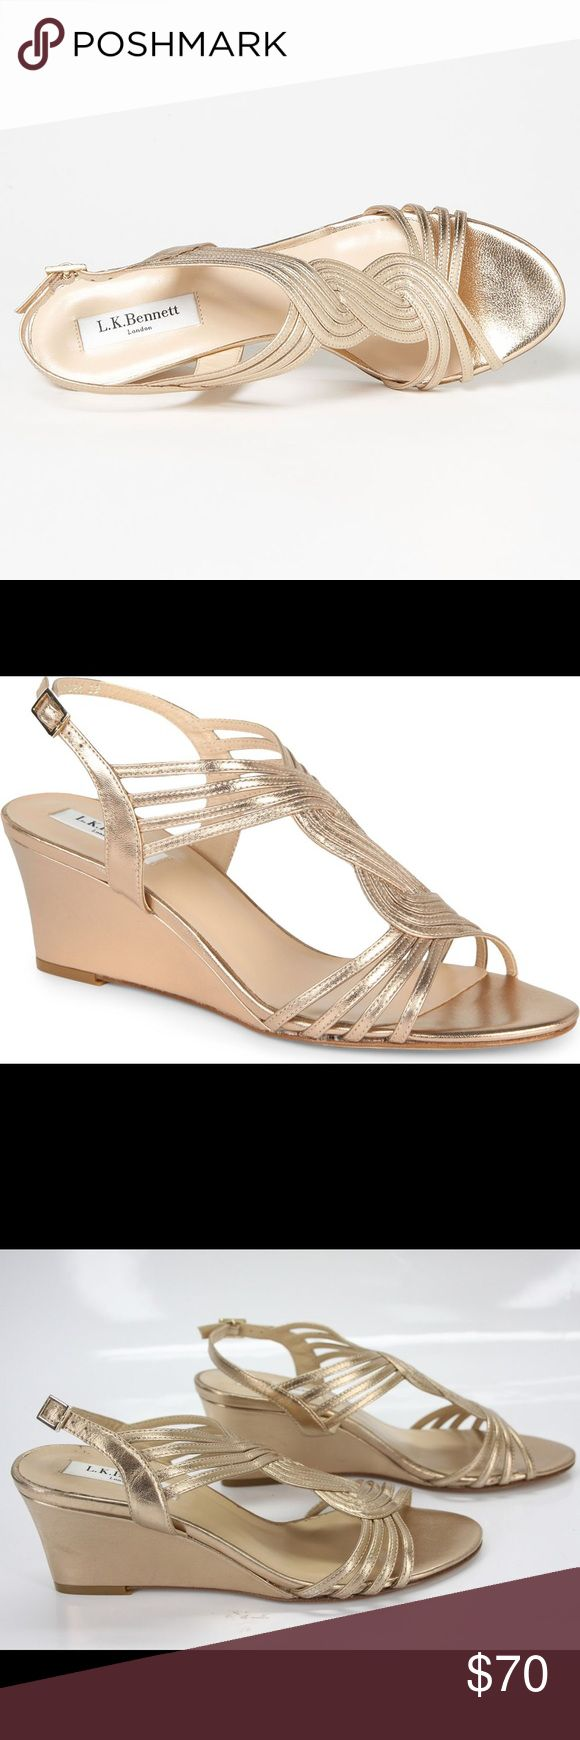 LK Bennett Dunes wedge sandals Never worn Dunes metallic wedge strap sandals by LK Bennett (Kate Middleton's favorite brand)! Original price is $310. More pics to come. Reasonable offers welcomed:)) LK Bennett Shoes Wedges